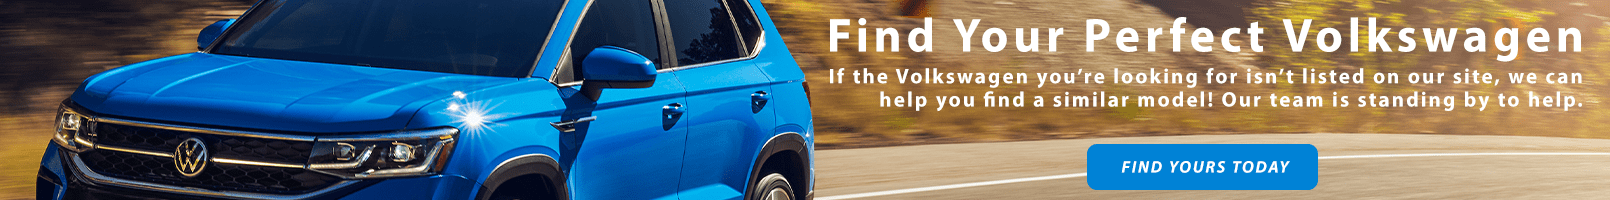 Find Your perfect VW